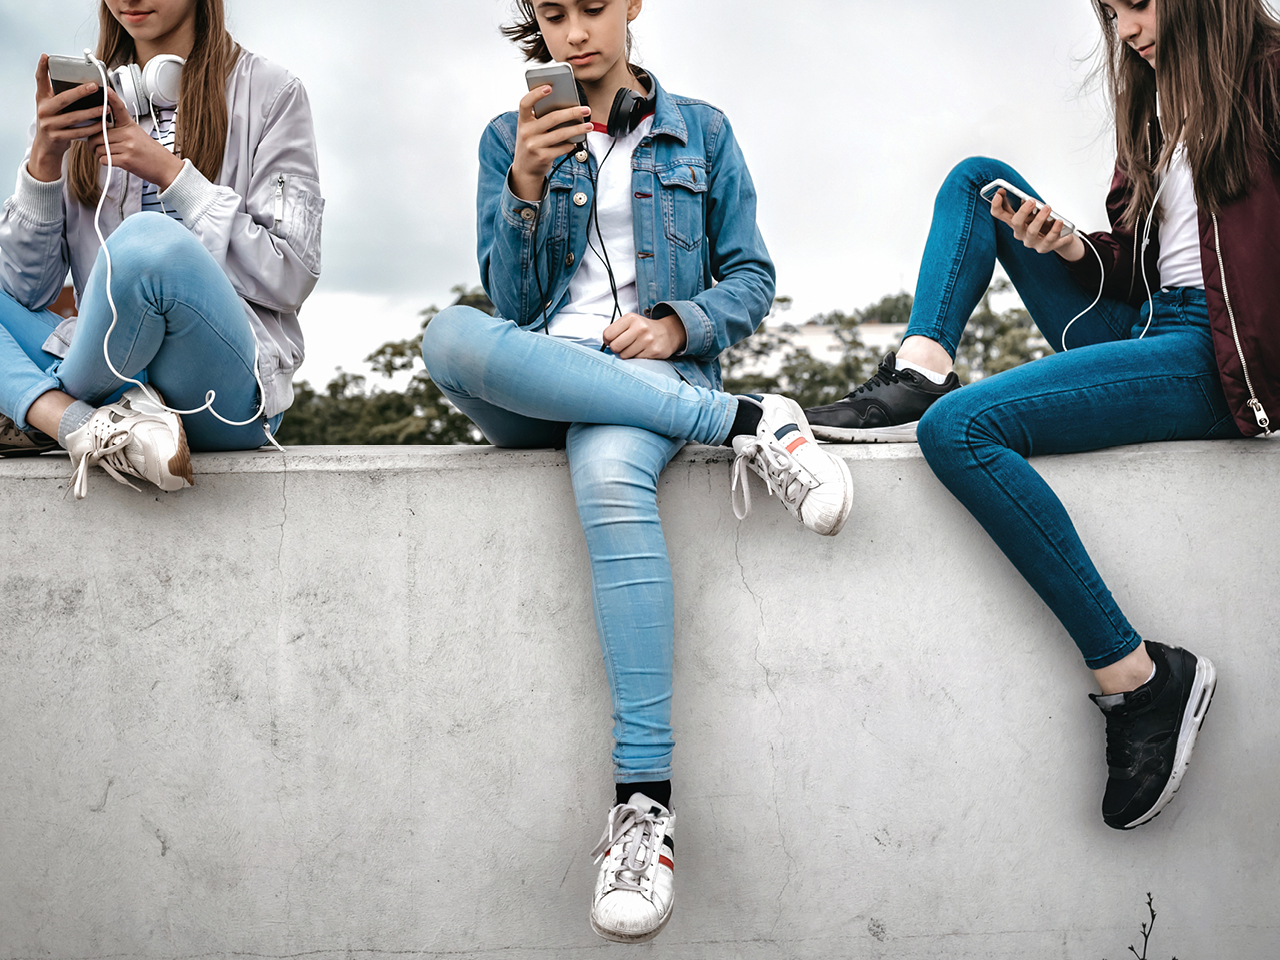 Teenage Girl On Social Media Feature Image Shows Girls Sitting On A Cement Wall While Using